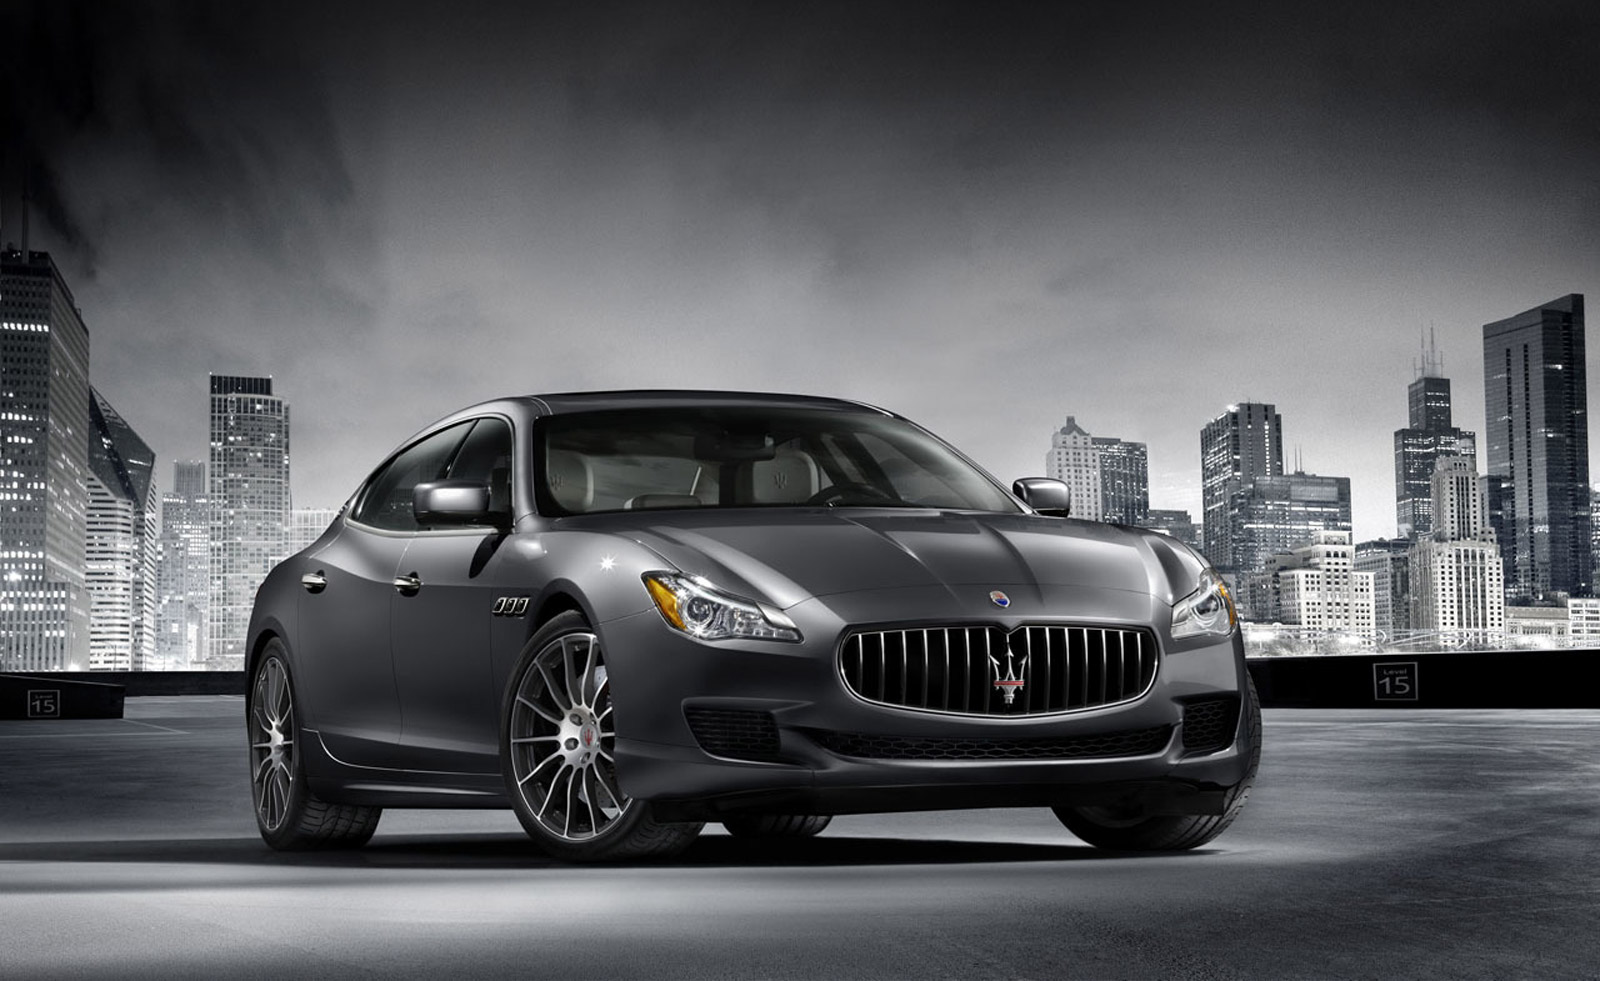 2015 maserati quattroporte review ratings specs prices and photos the car connection. Black Bedroom Furniture Sets. Home Design Ideas